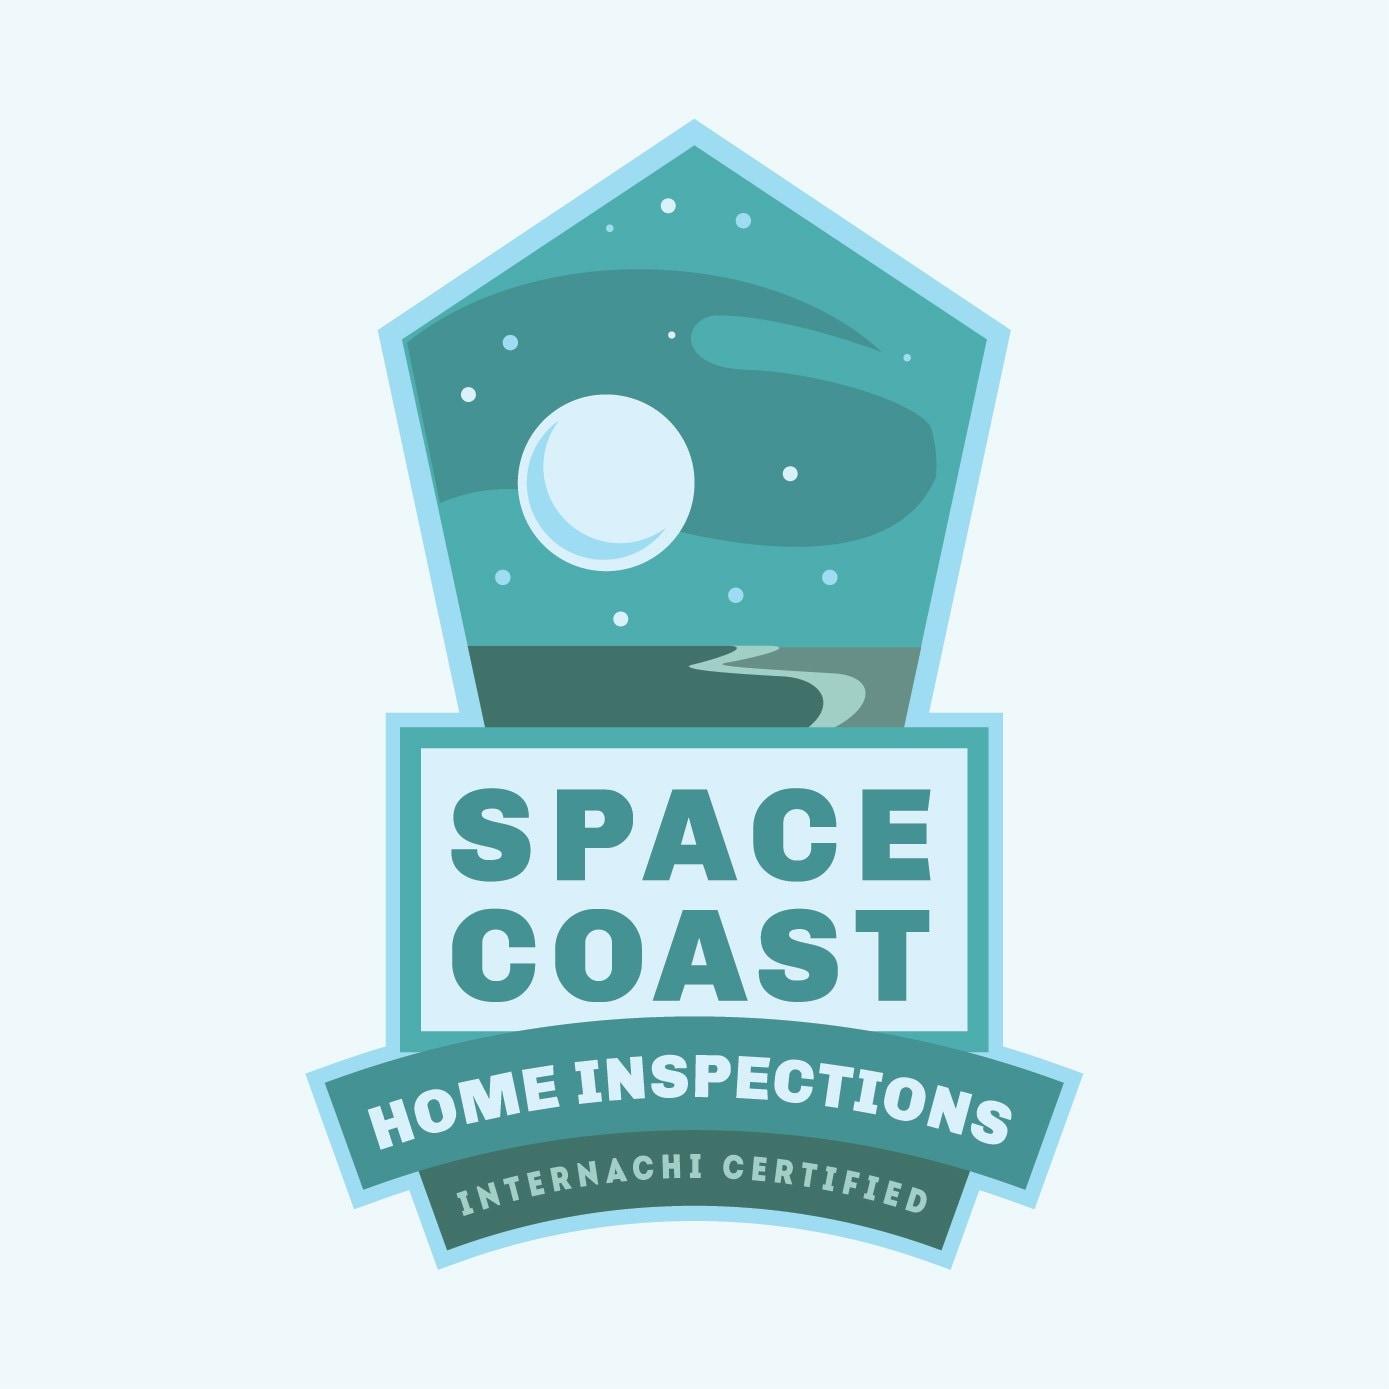 Space Coast Home Inspections LLC